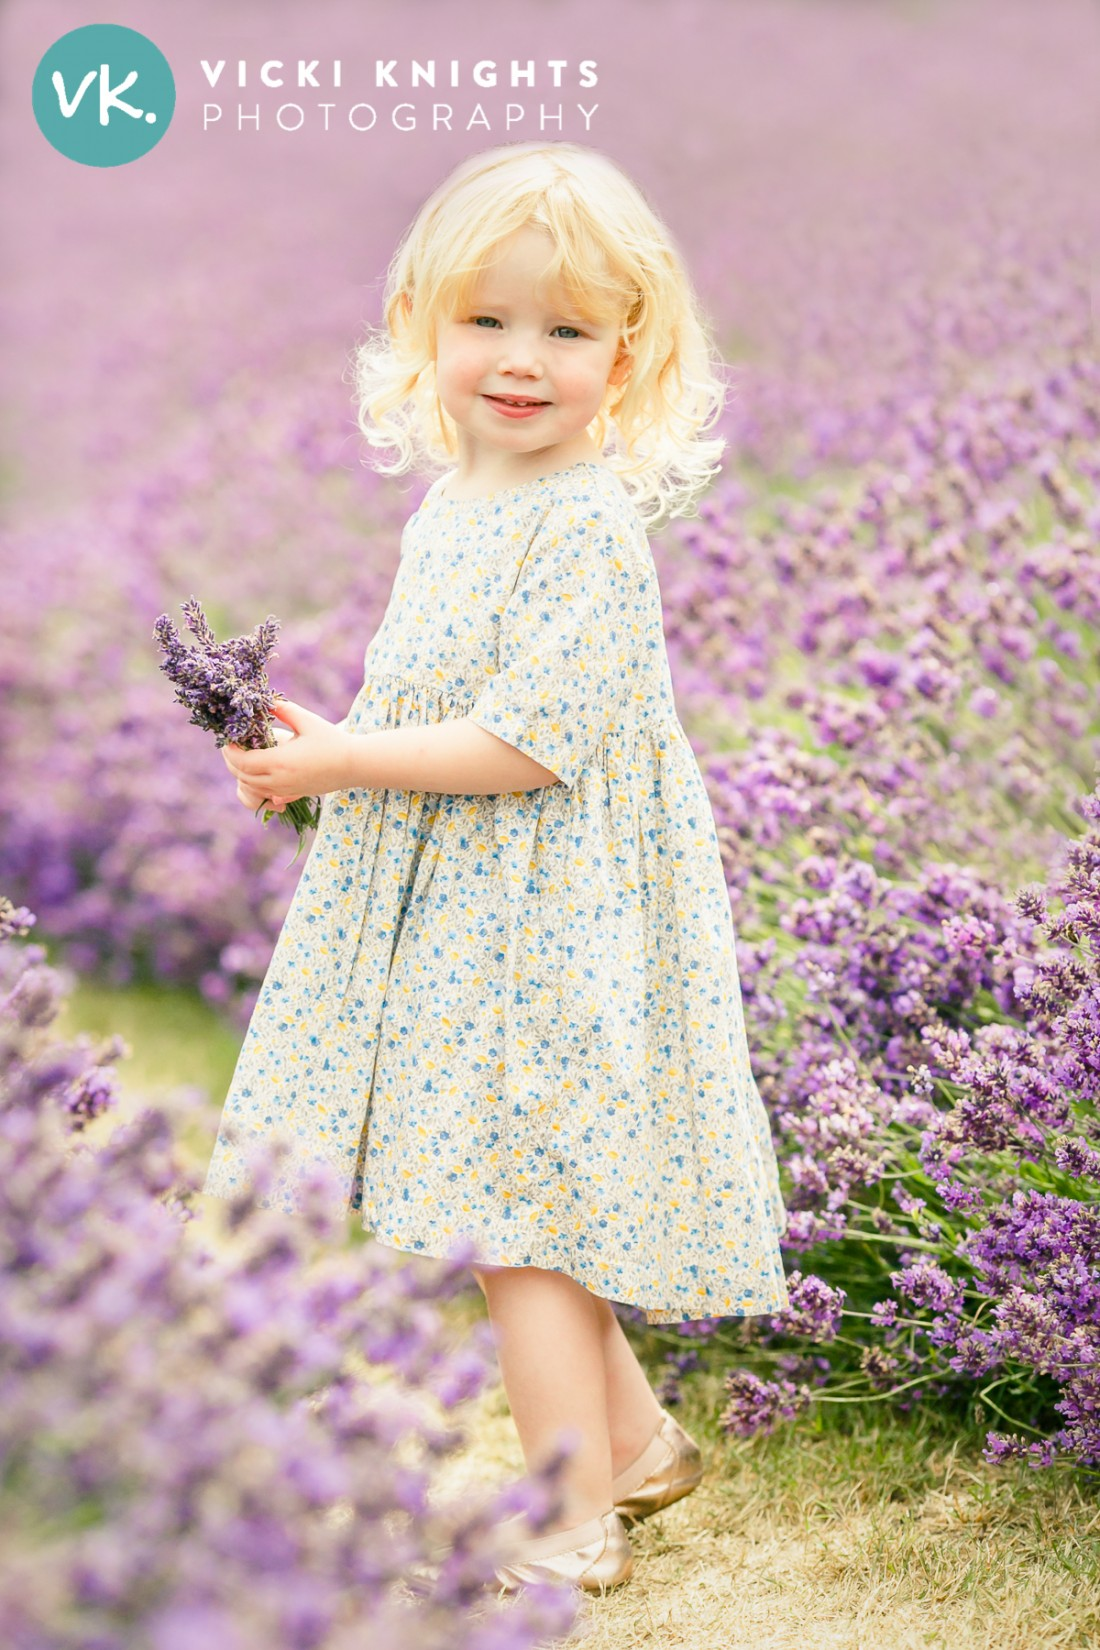 lavender-child-photo-shoot-vicki-knights-01